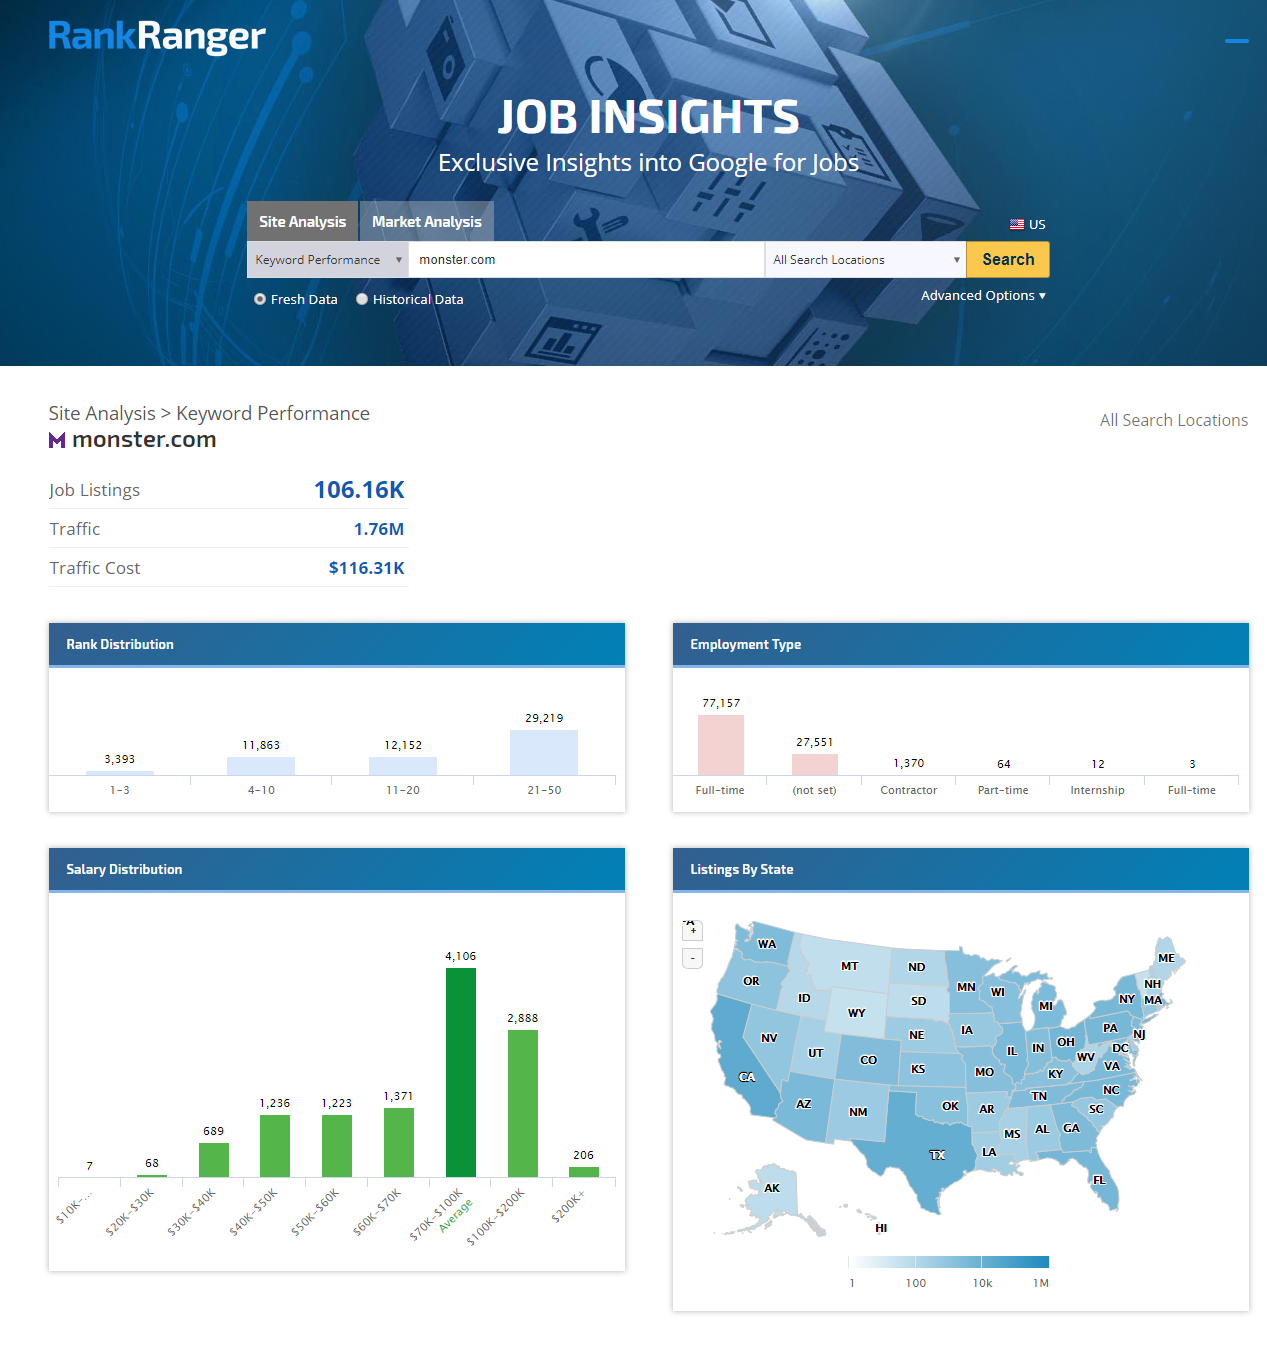 The Google for Jobs Insights Tool